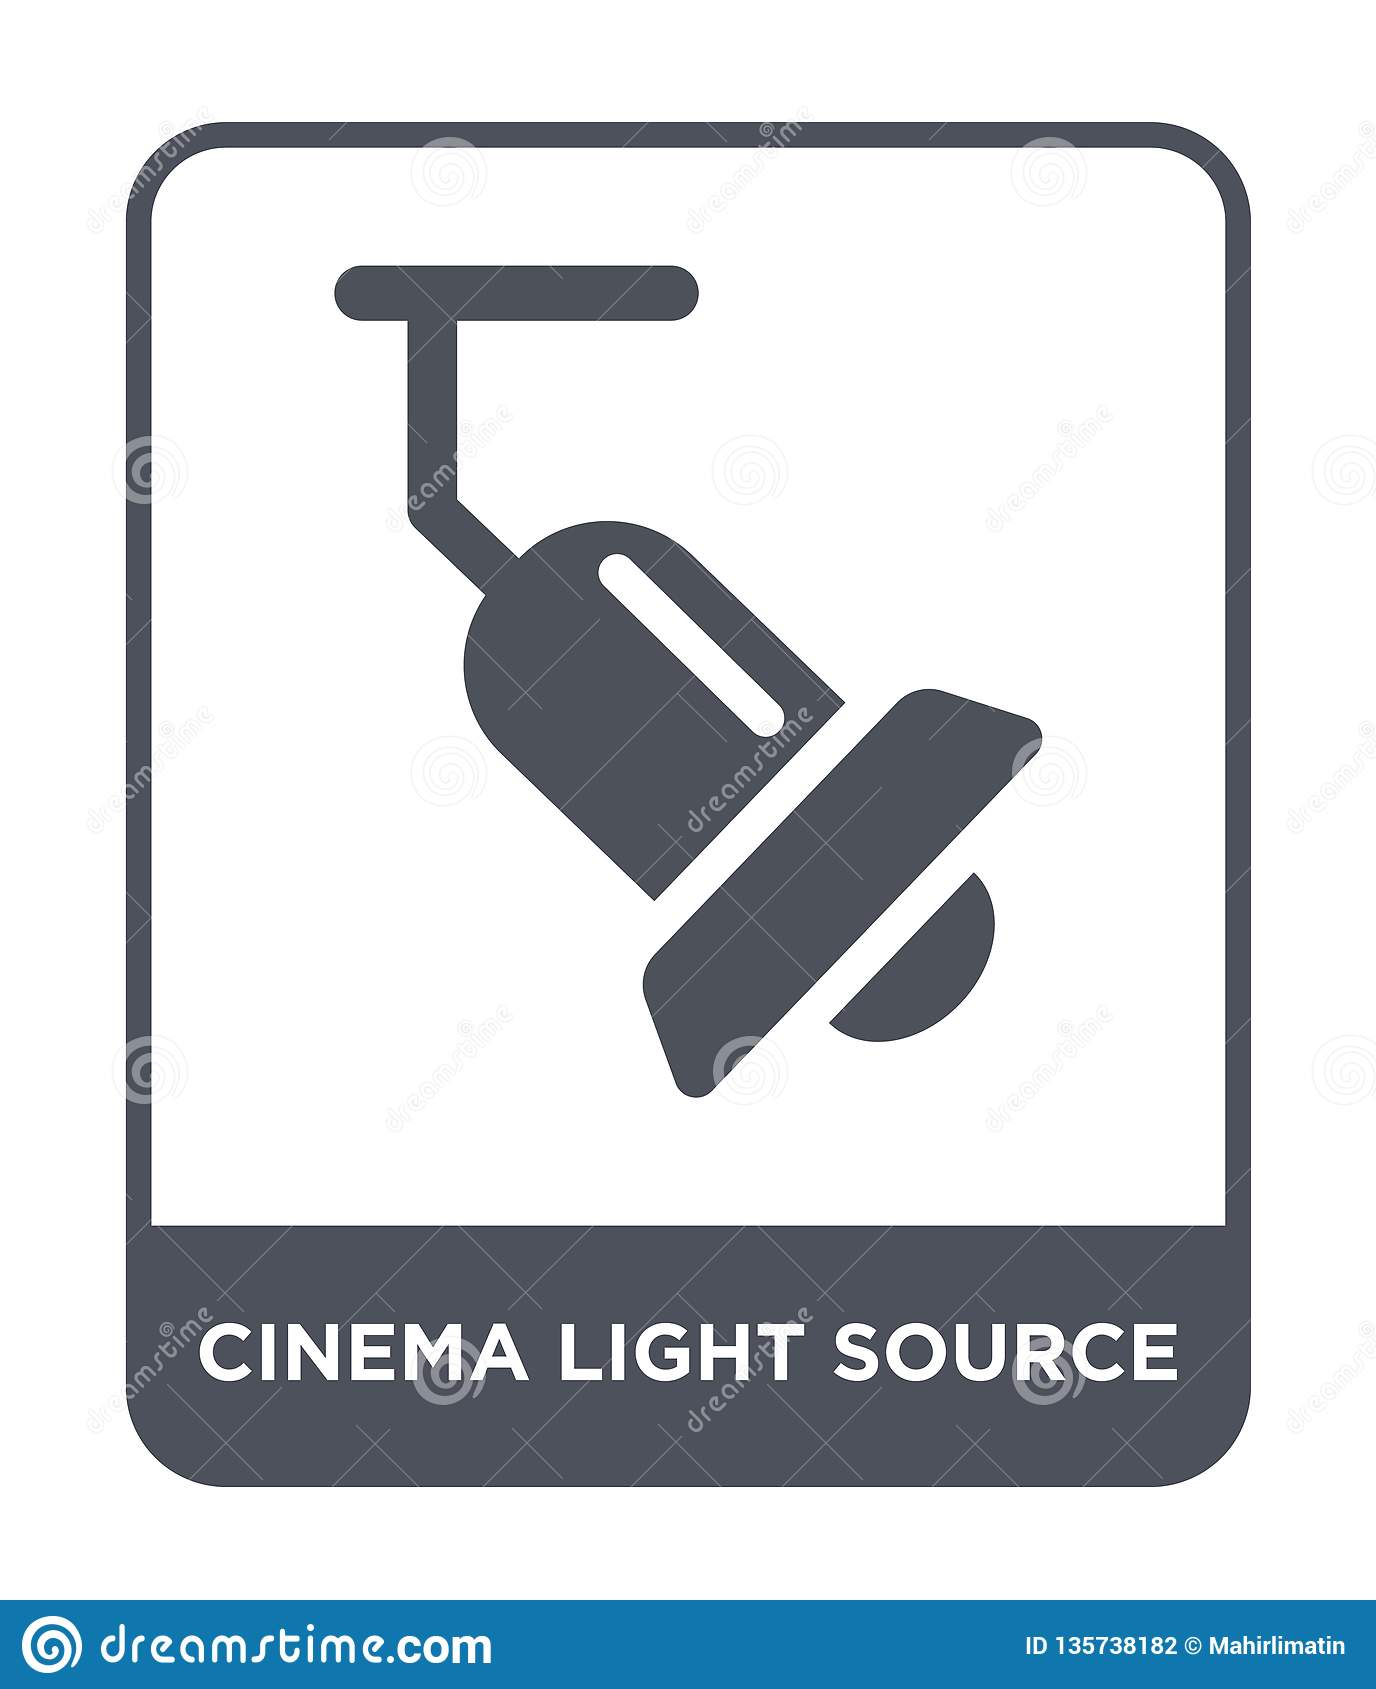 cinema light source icon in trendy design style. cinema light source icon isolated on white background. cinema light source vector